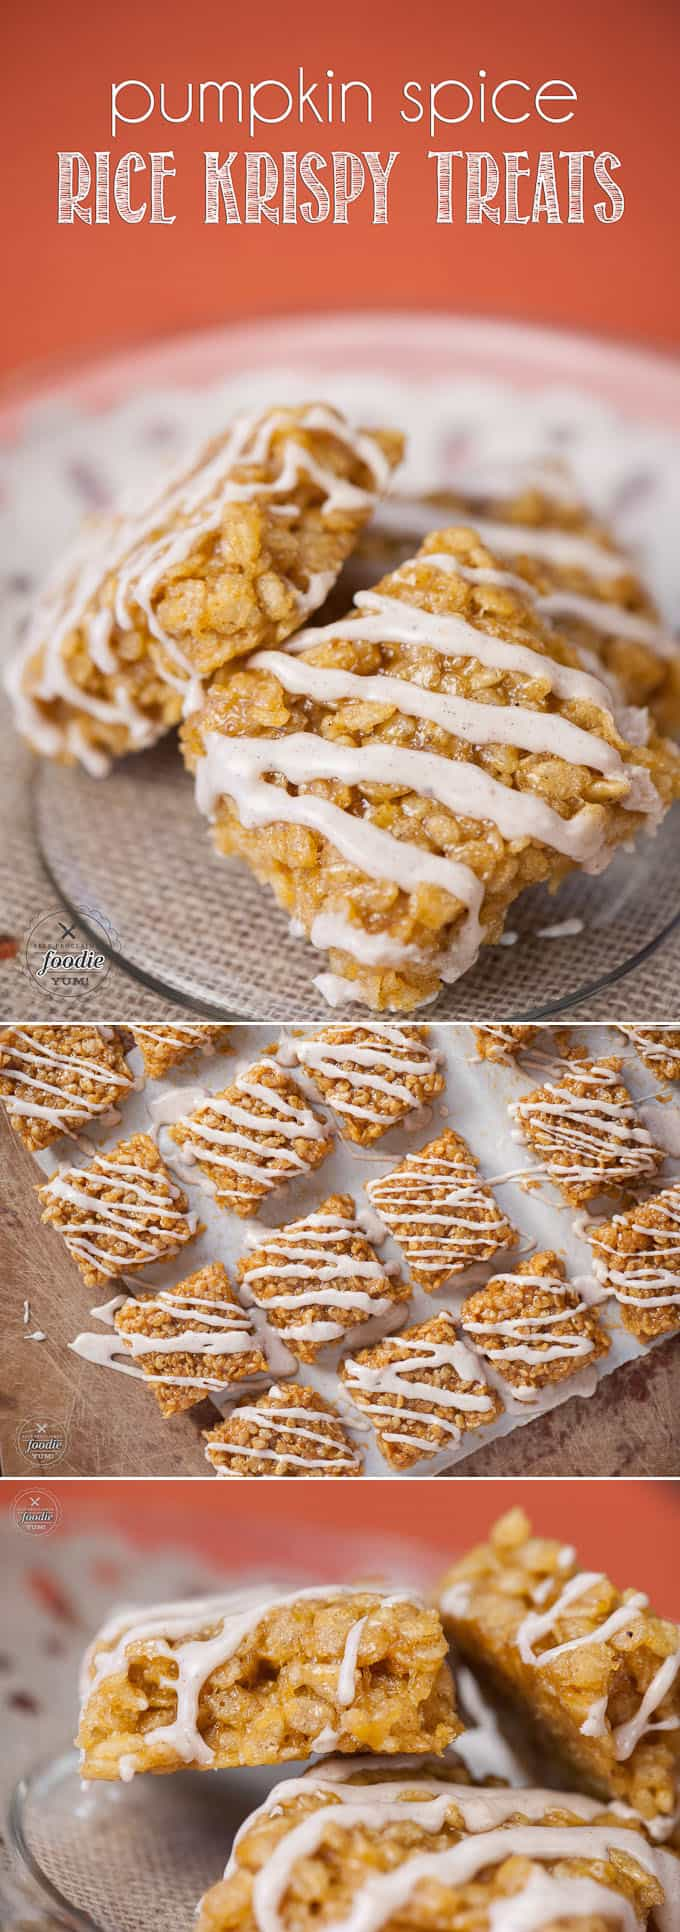 Transform one of your favorite classic desserts into a fall favorite by making these super chewy and sweet Pumpkin Spice Rice Krispy Treats.